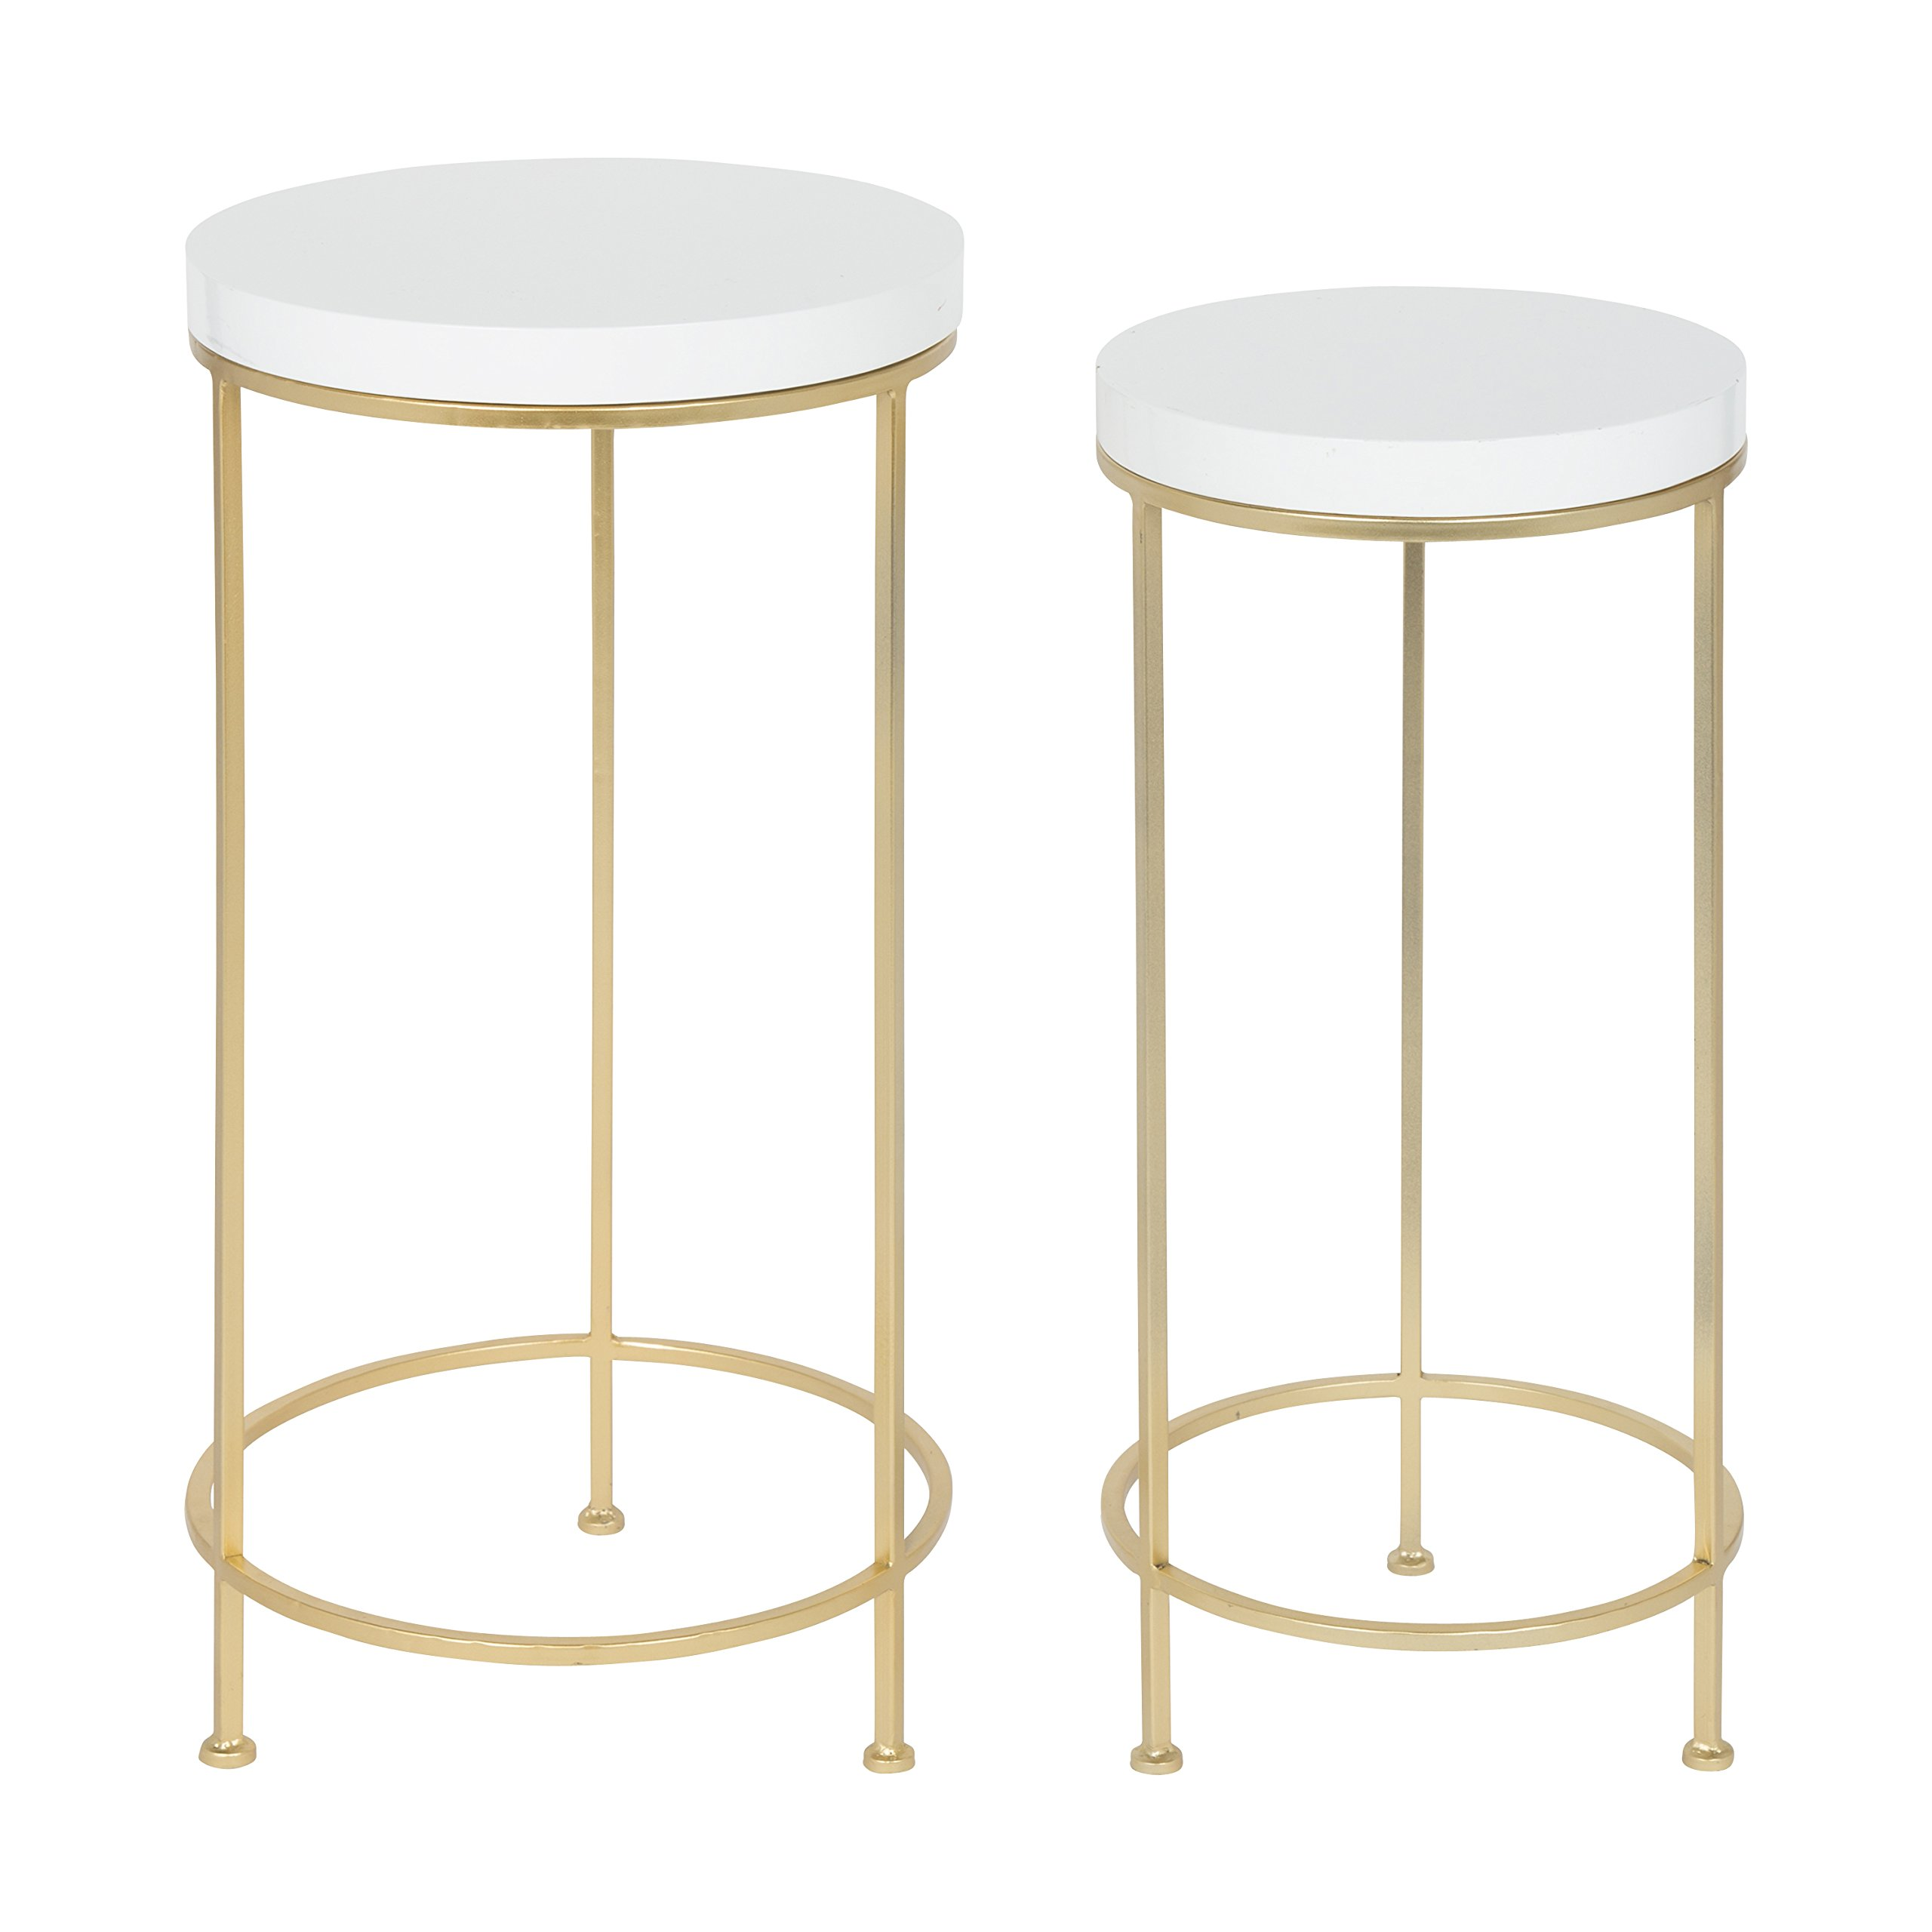 Kate and Laurel Espada Metal and Wood Nesting Tables, Gold by Kate and Laurel